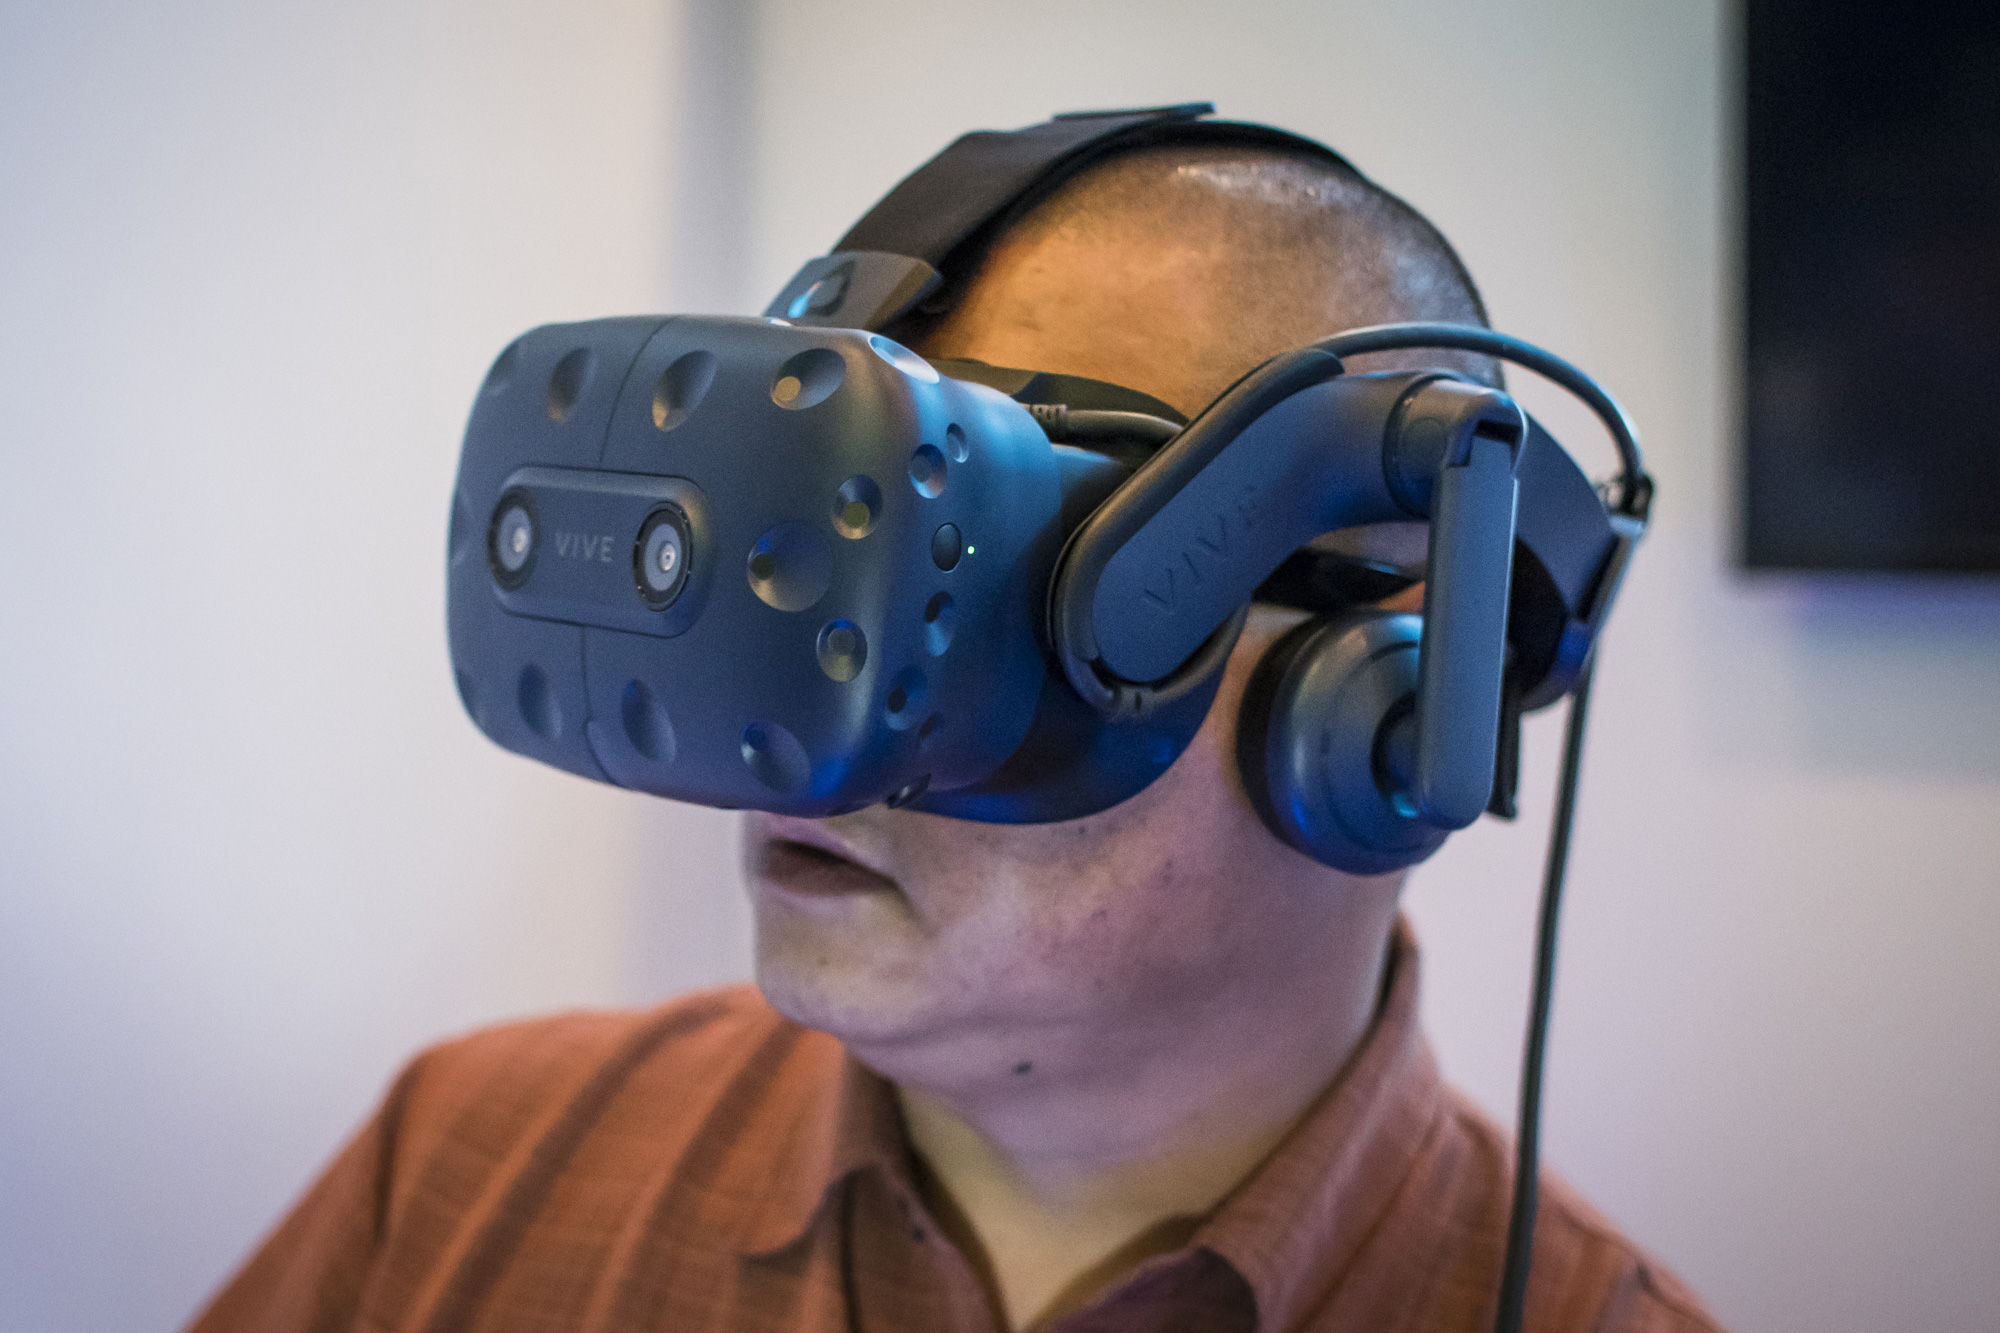 HTC announces Vive Pro headset, wireless Vive adaptor